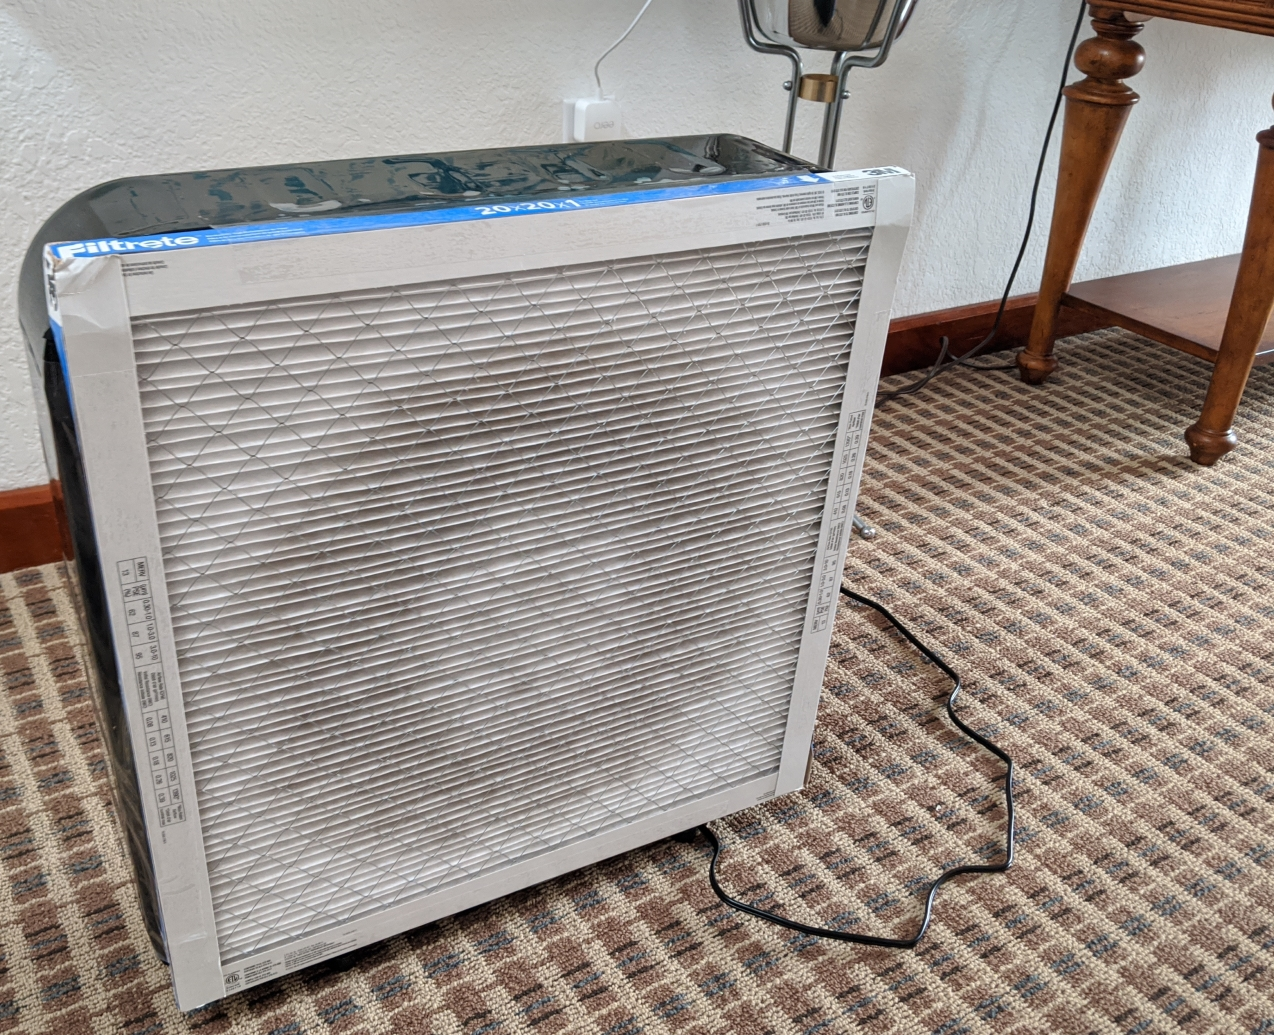 The completed DIY air purifier